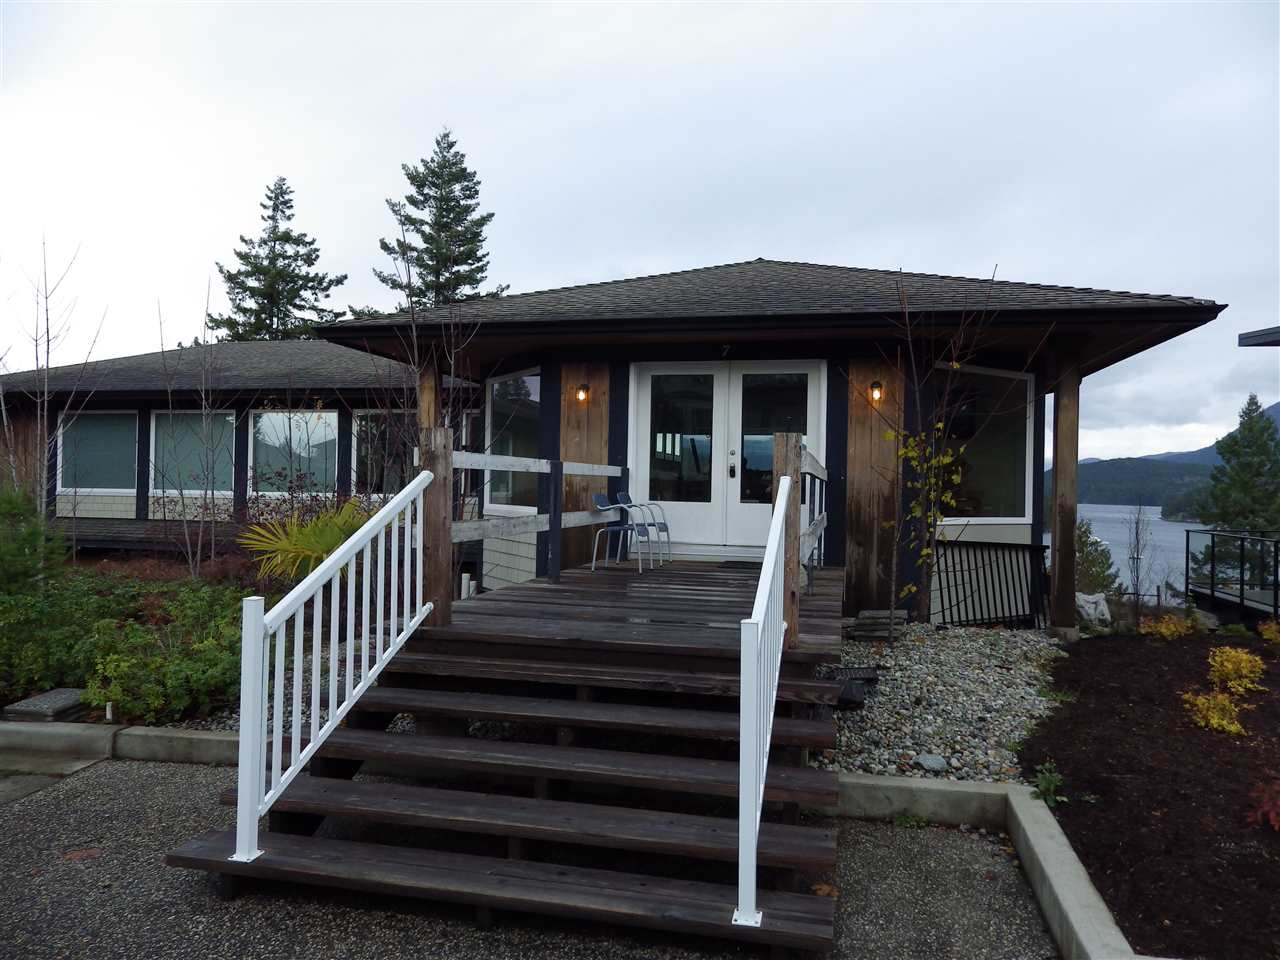 Photo 4: Photos: 7 5778 MARINE Way in Sechelt: Sechelt District Townhouse for sale (Sunshine Coast)  : MLS®# R2222376